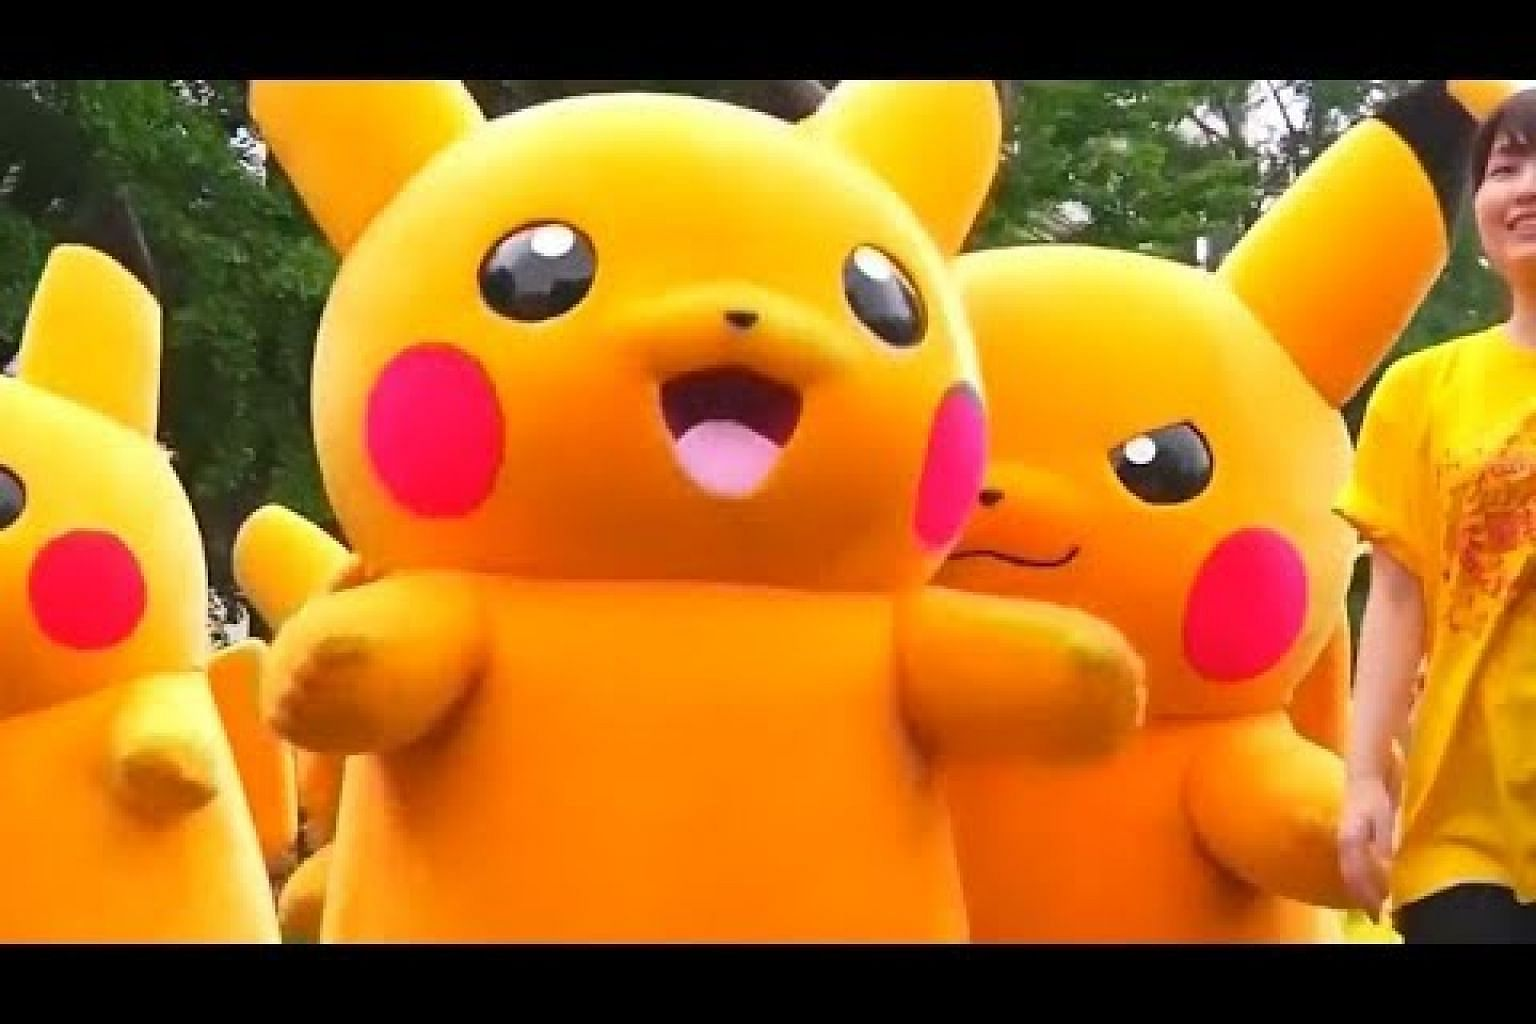 More than 100 Pikachus parade in Japan as fans cheer on